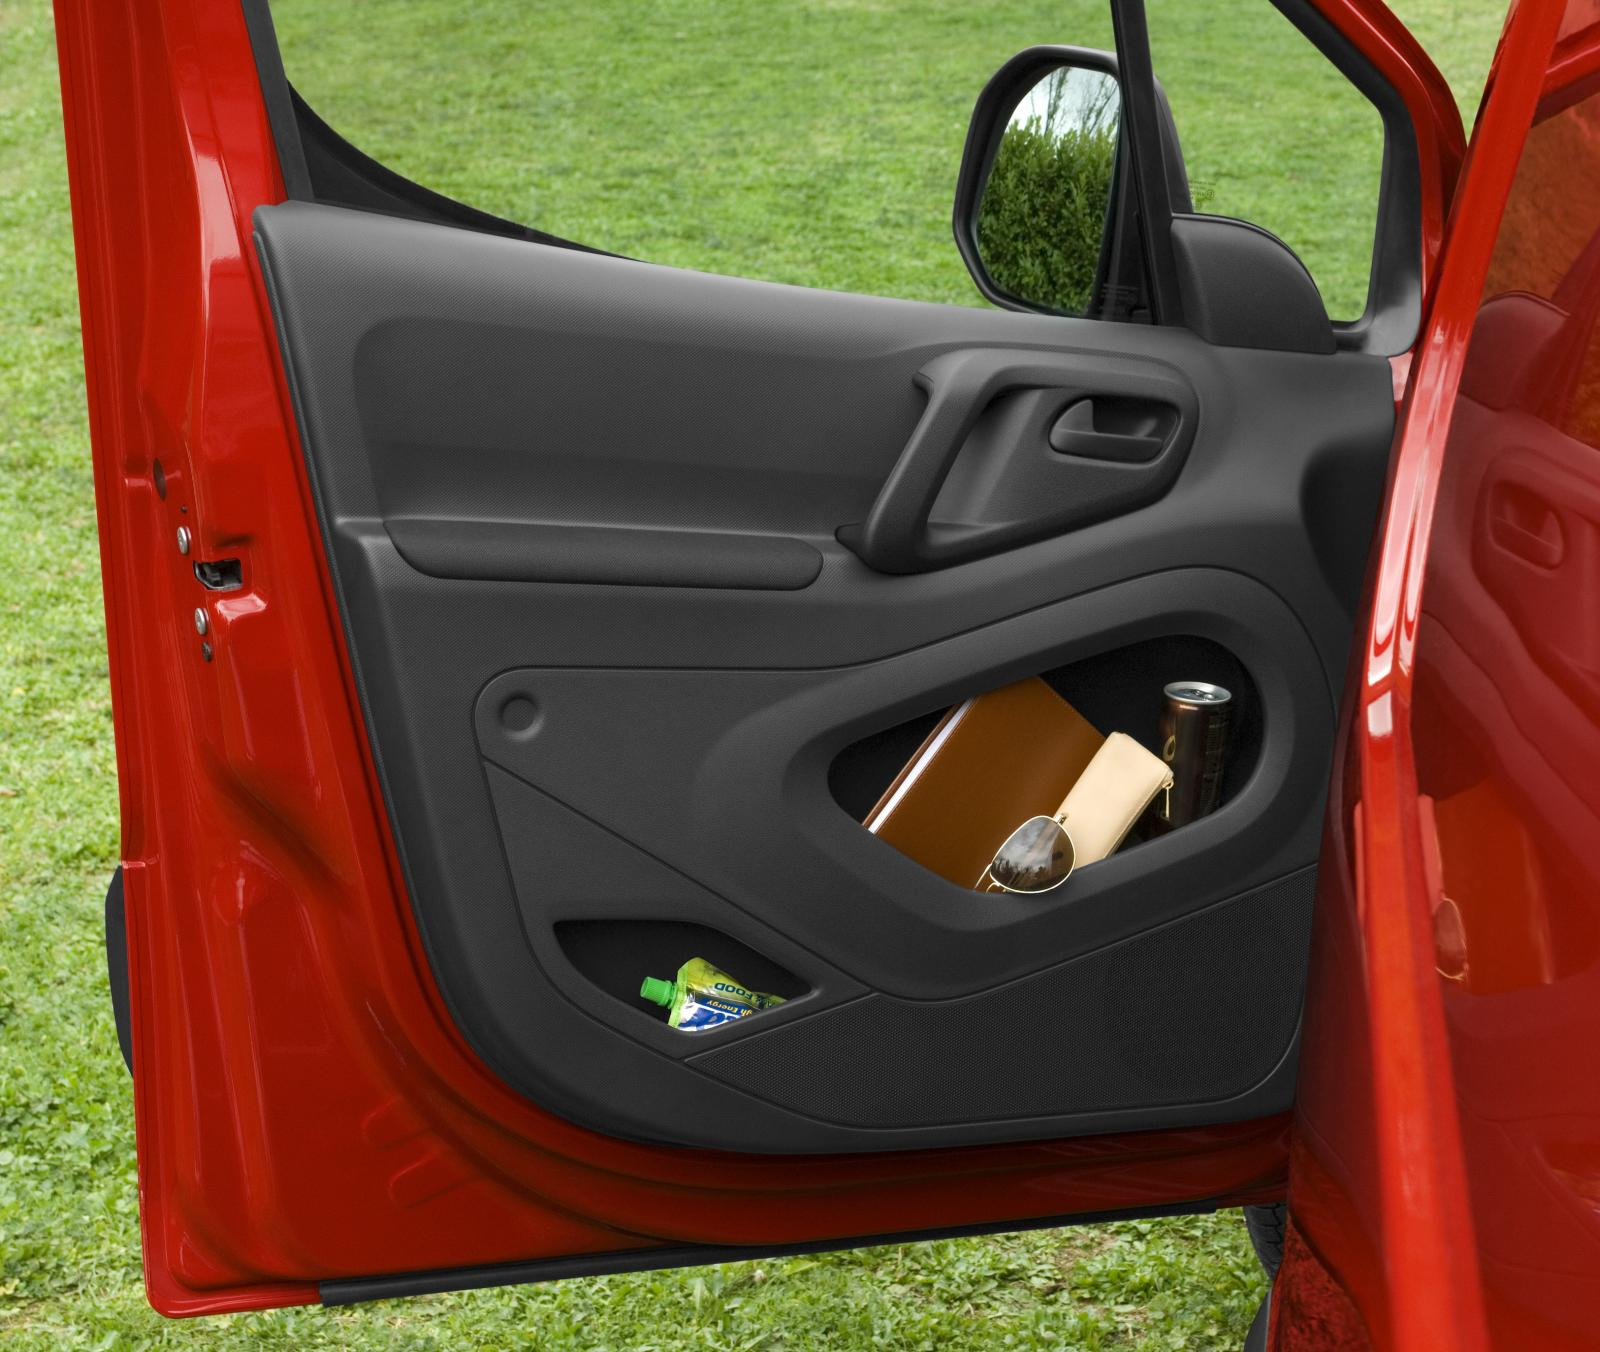 Berlingo 2008 door